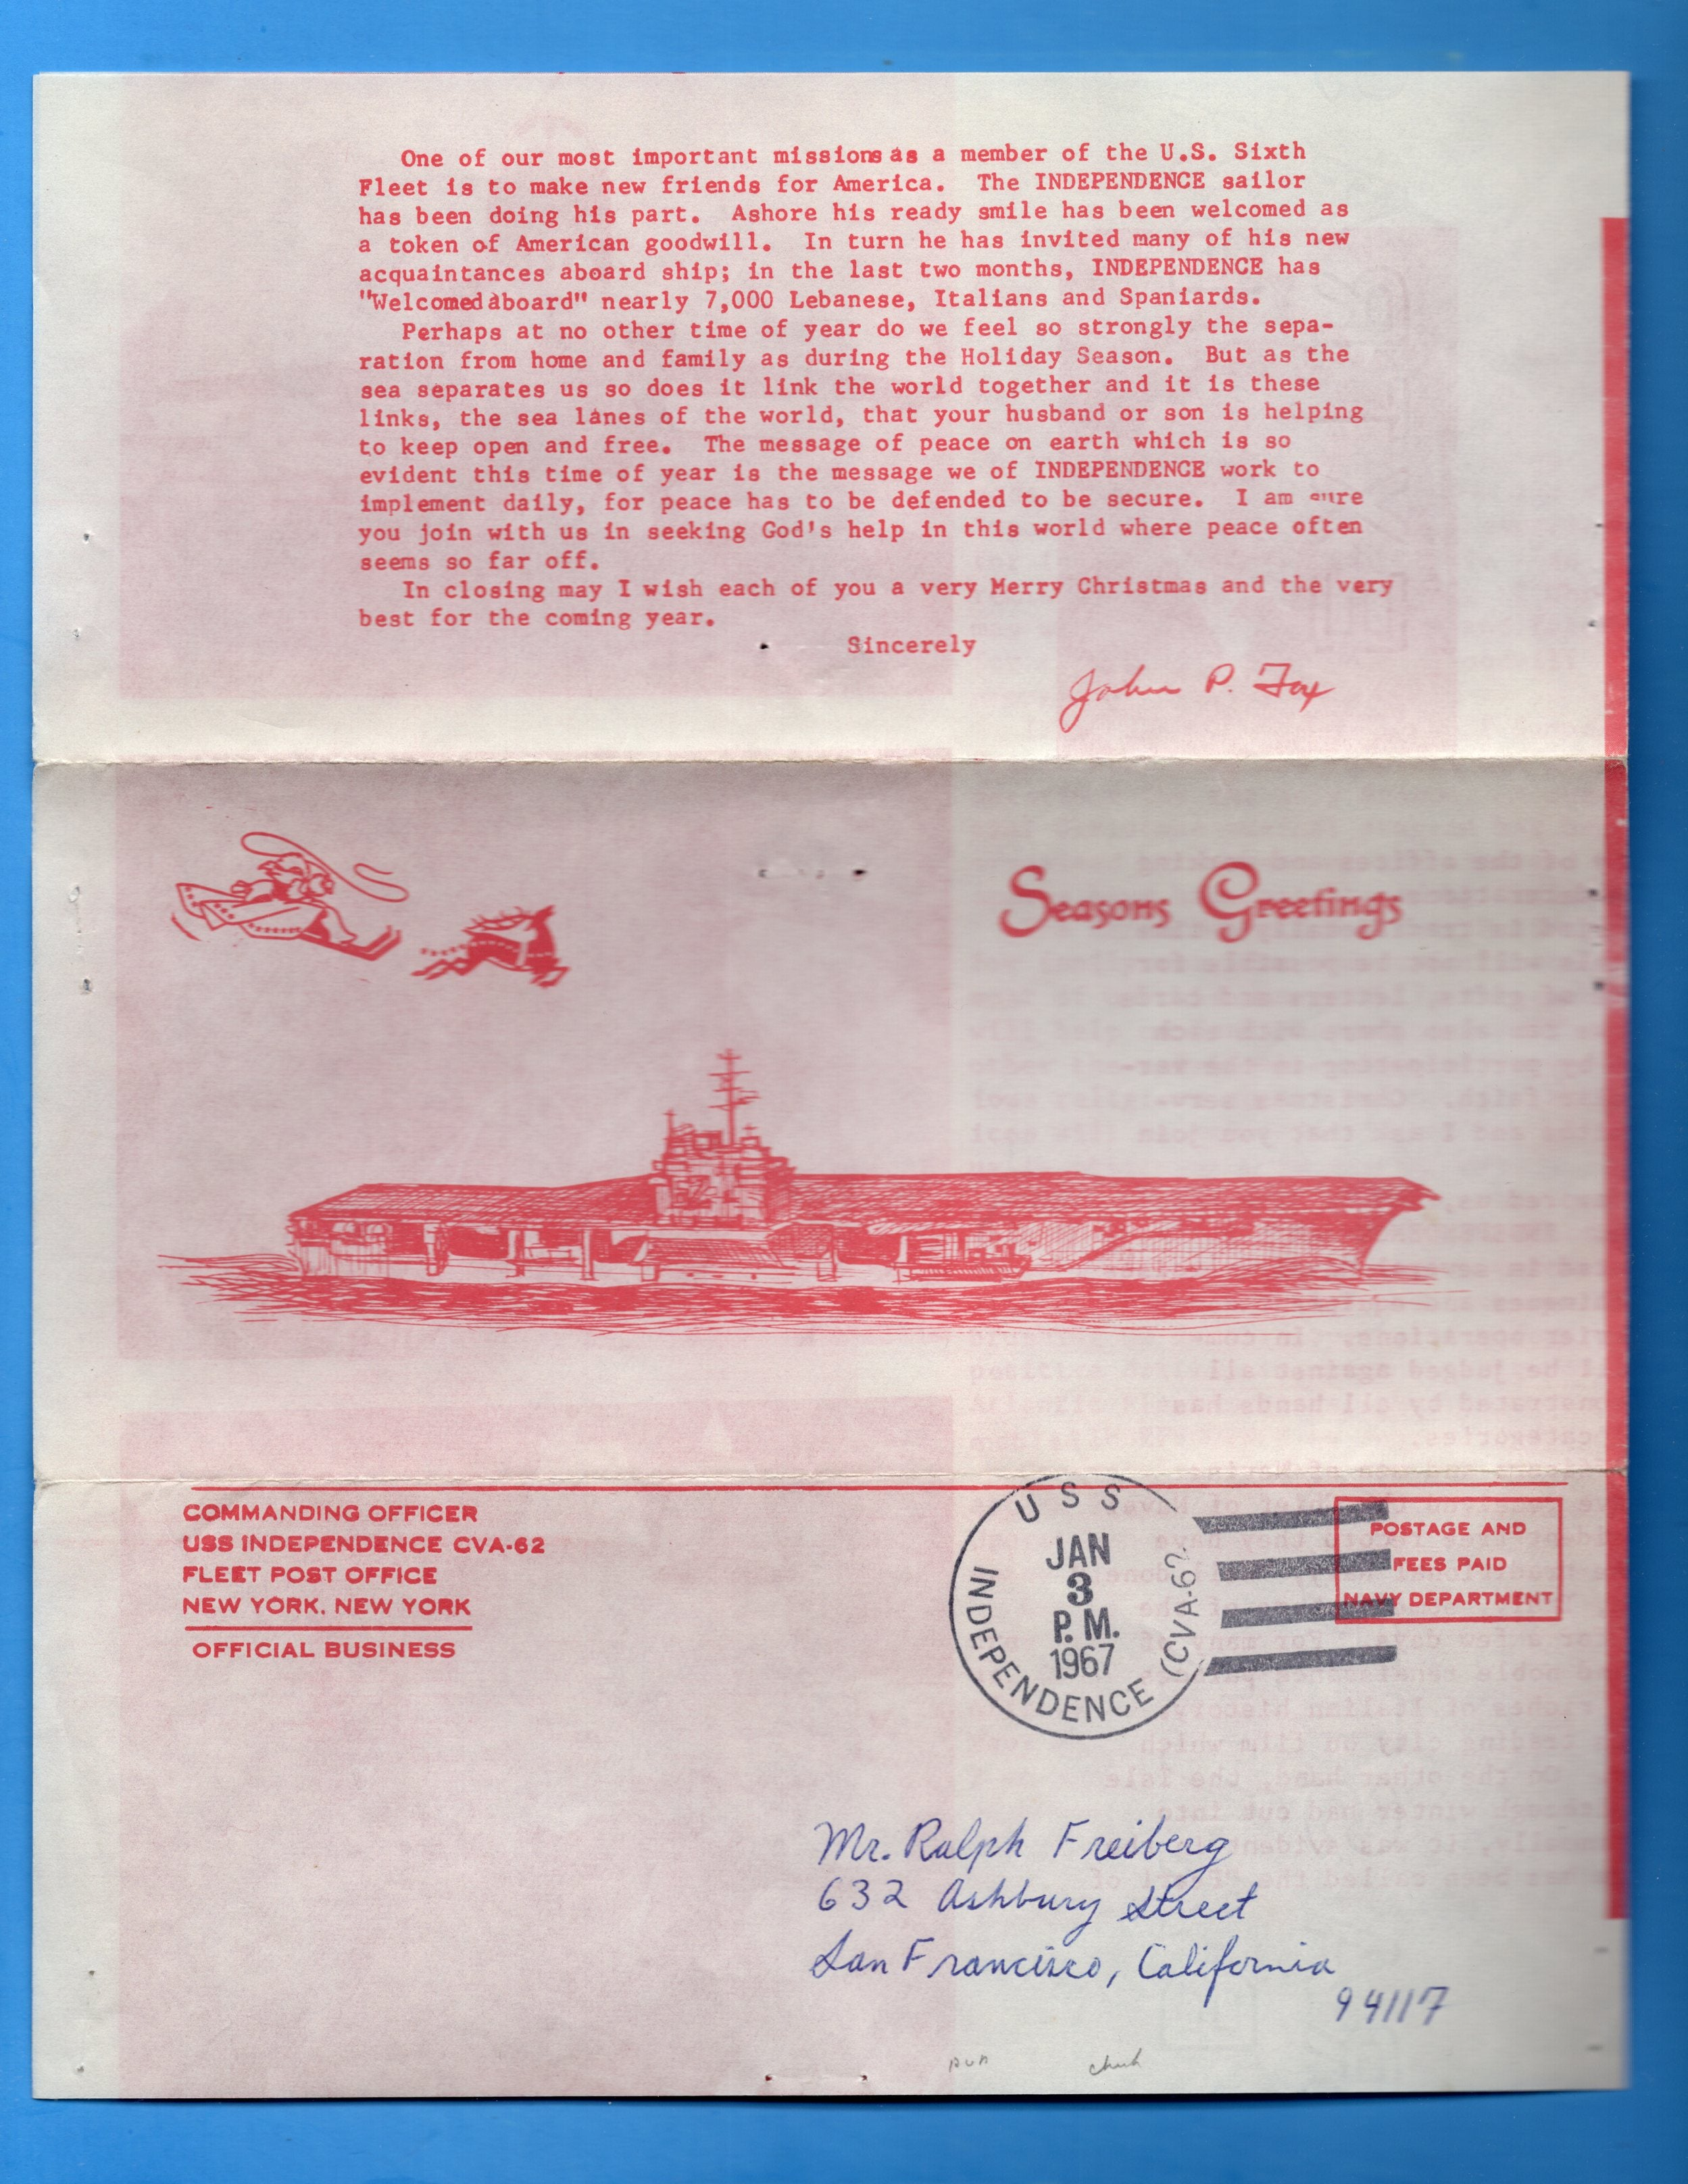 USS Independence CVA-62 Commanding Officer Christmas Family Gram Jan 3, 1967